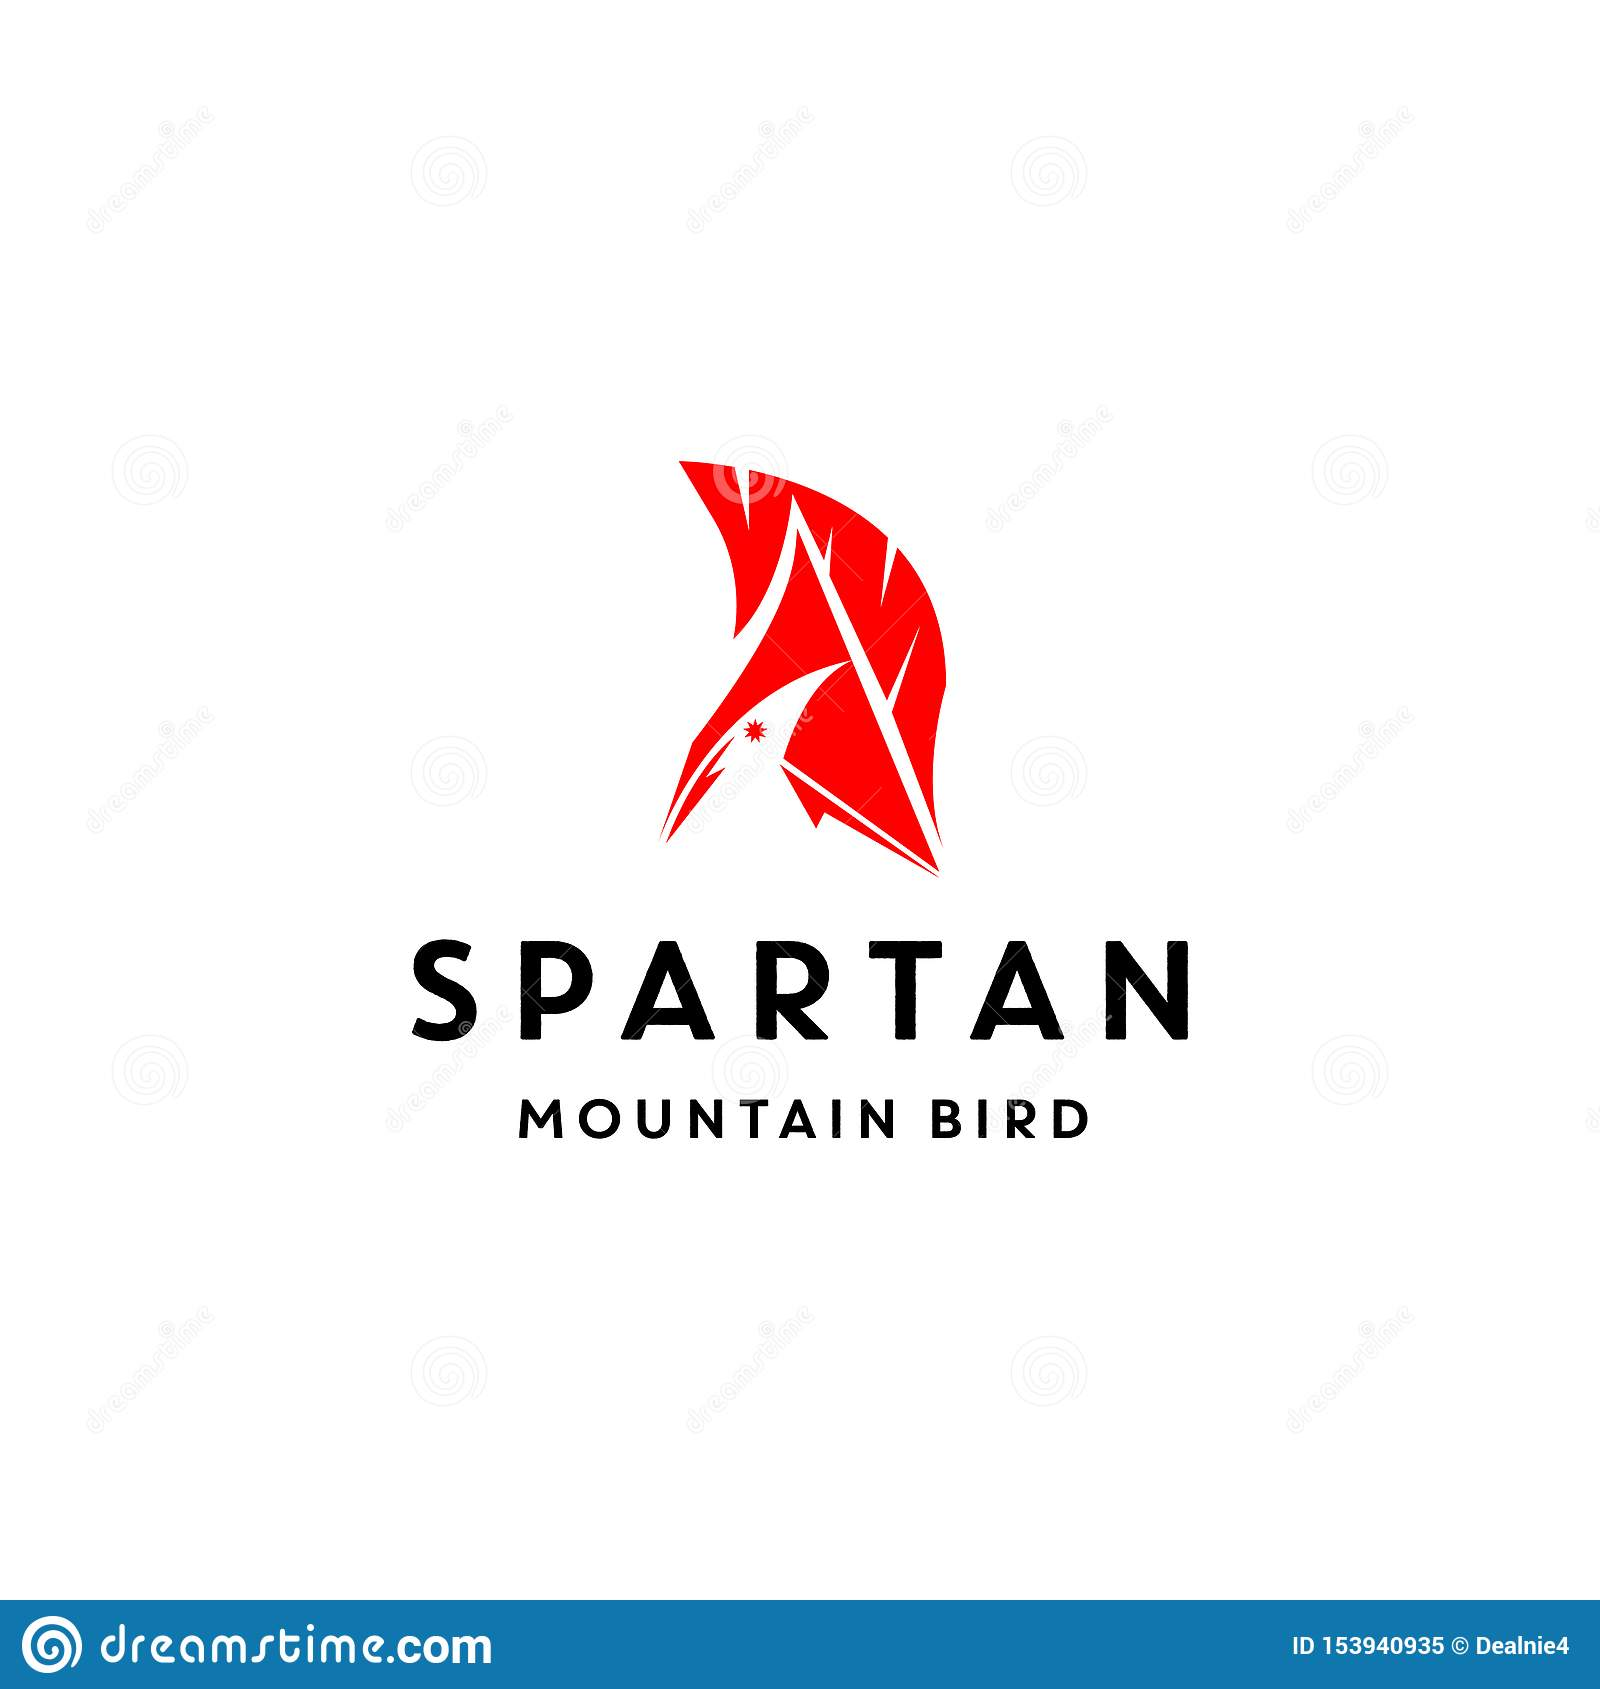 Unique logo design with Bird, Mountain and spartan helmet vector icon illustration inspiration